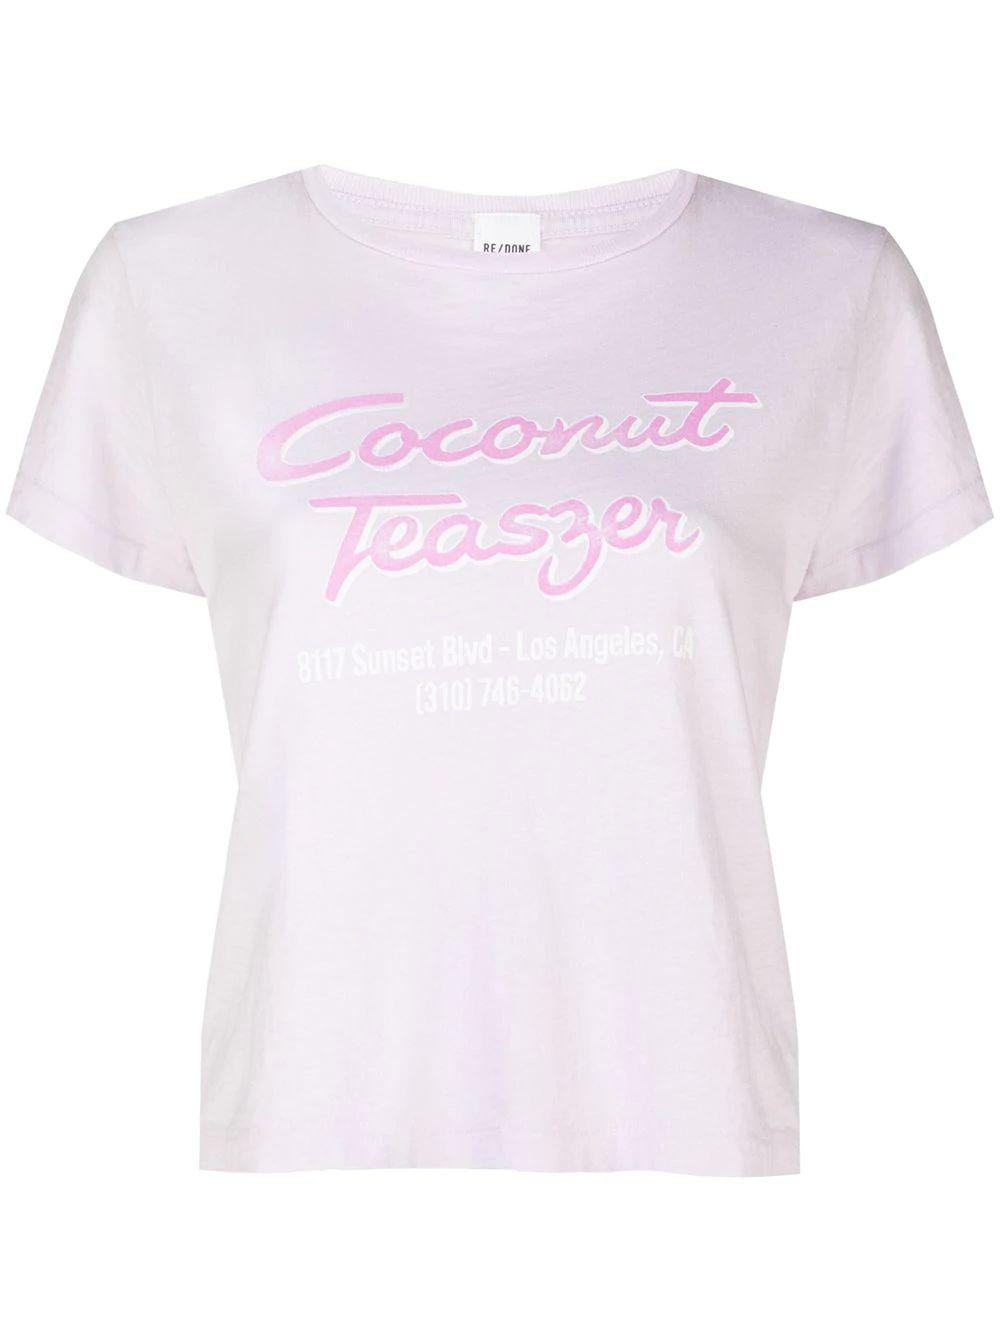 Classic Tee ` Coconut Teaser ` Item # 024-2WCGT123